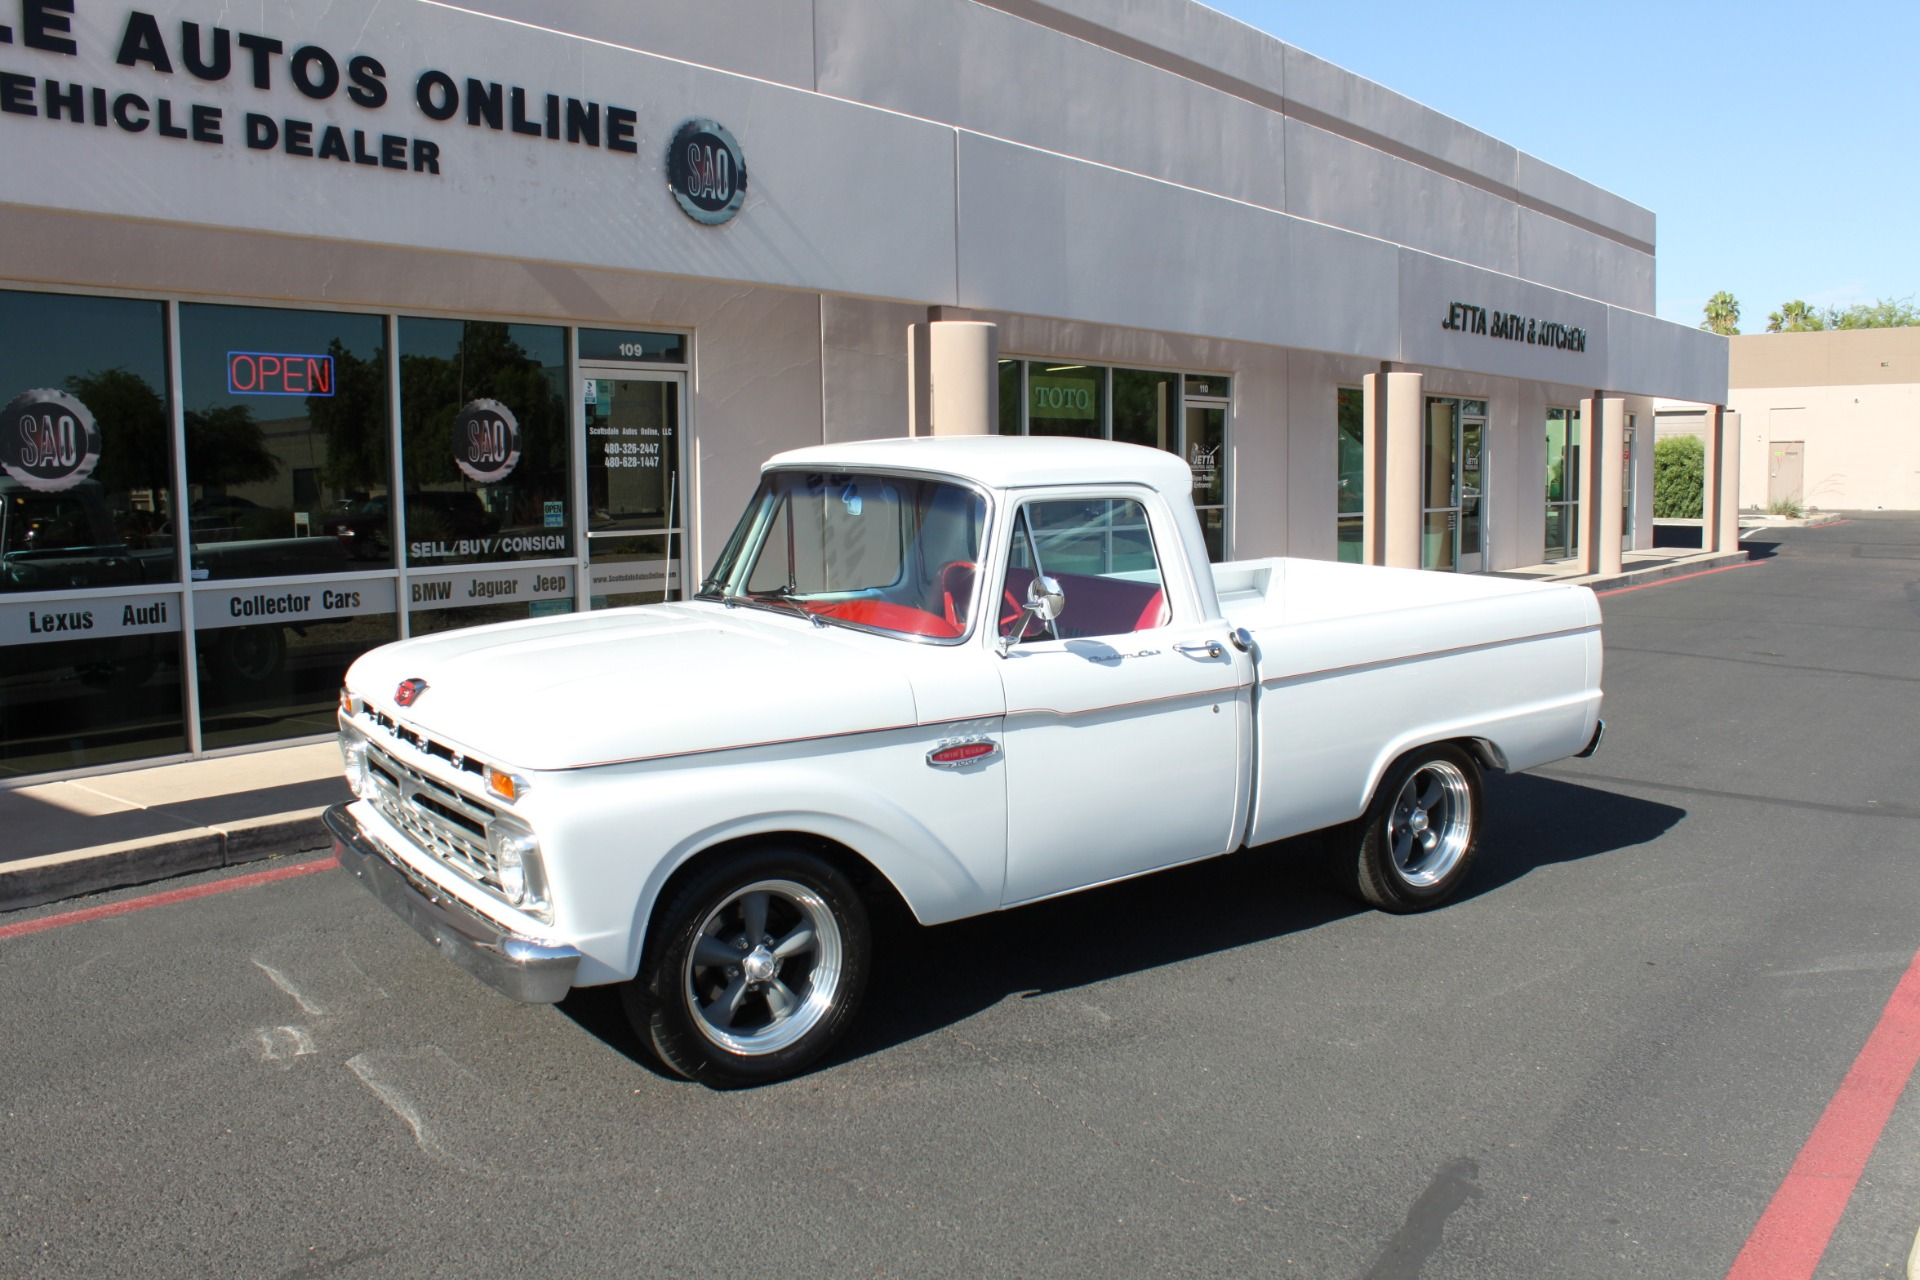 Used-1966-Ford-F-100-Custom-Cab-Acura